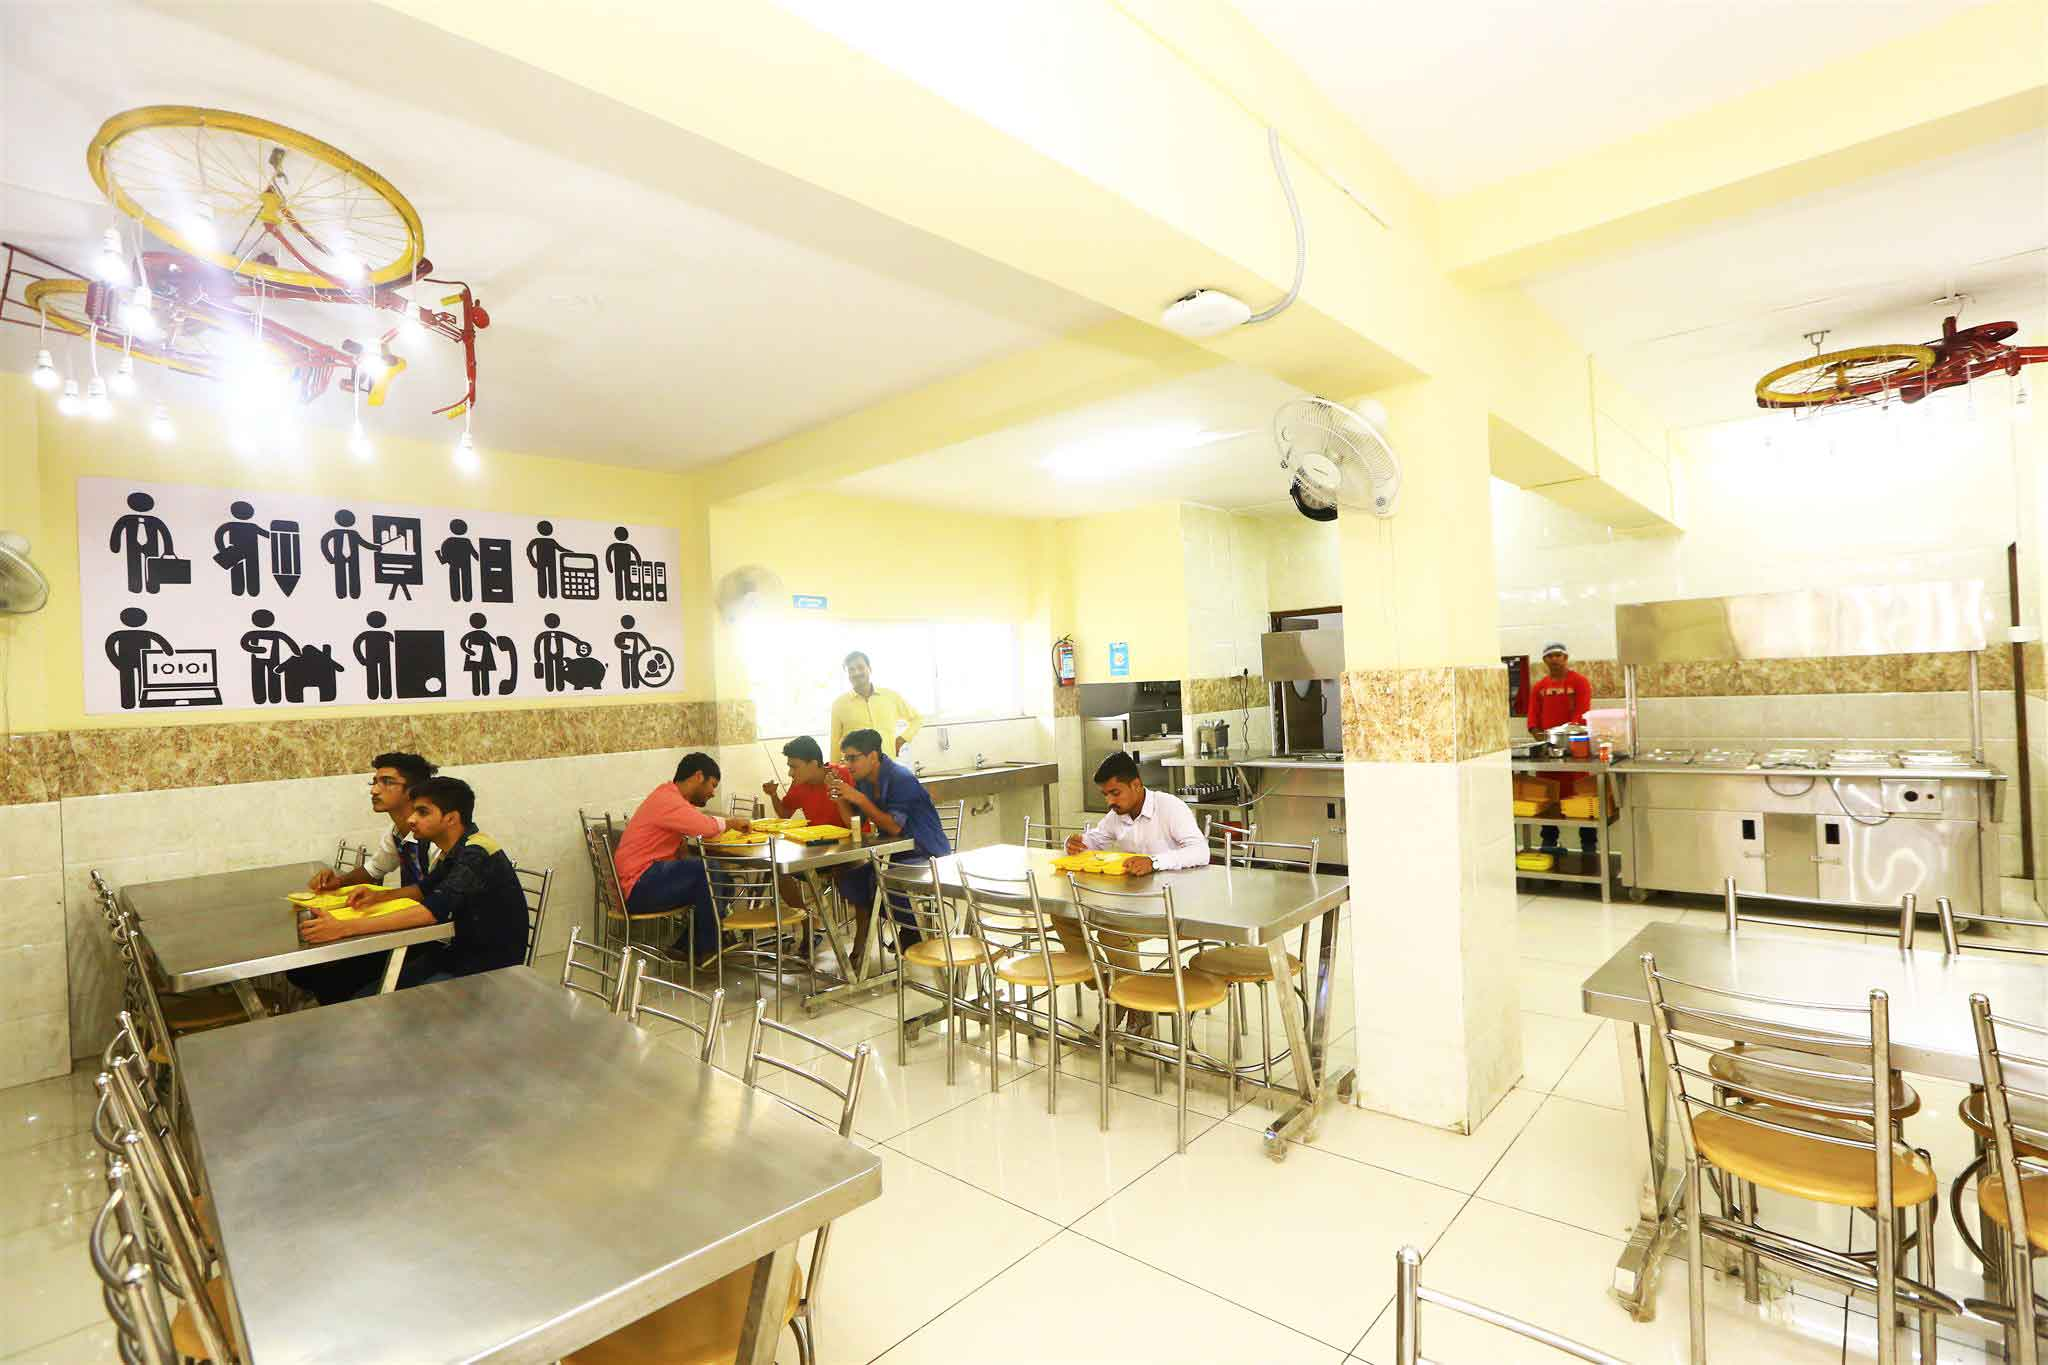 Student Hostels signature dishes